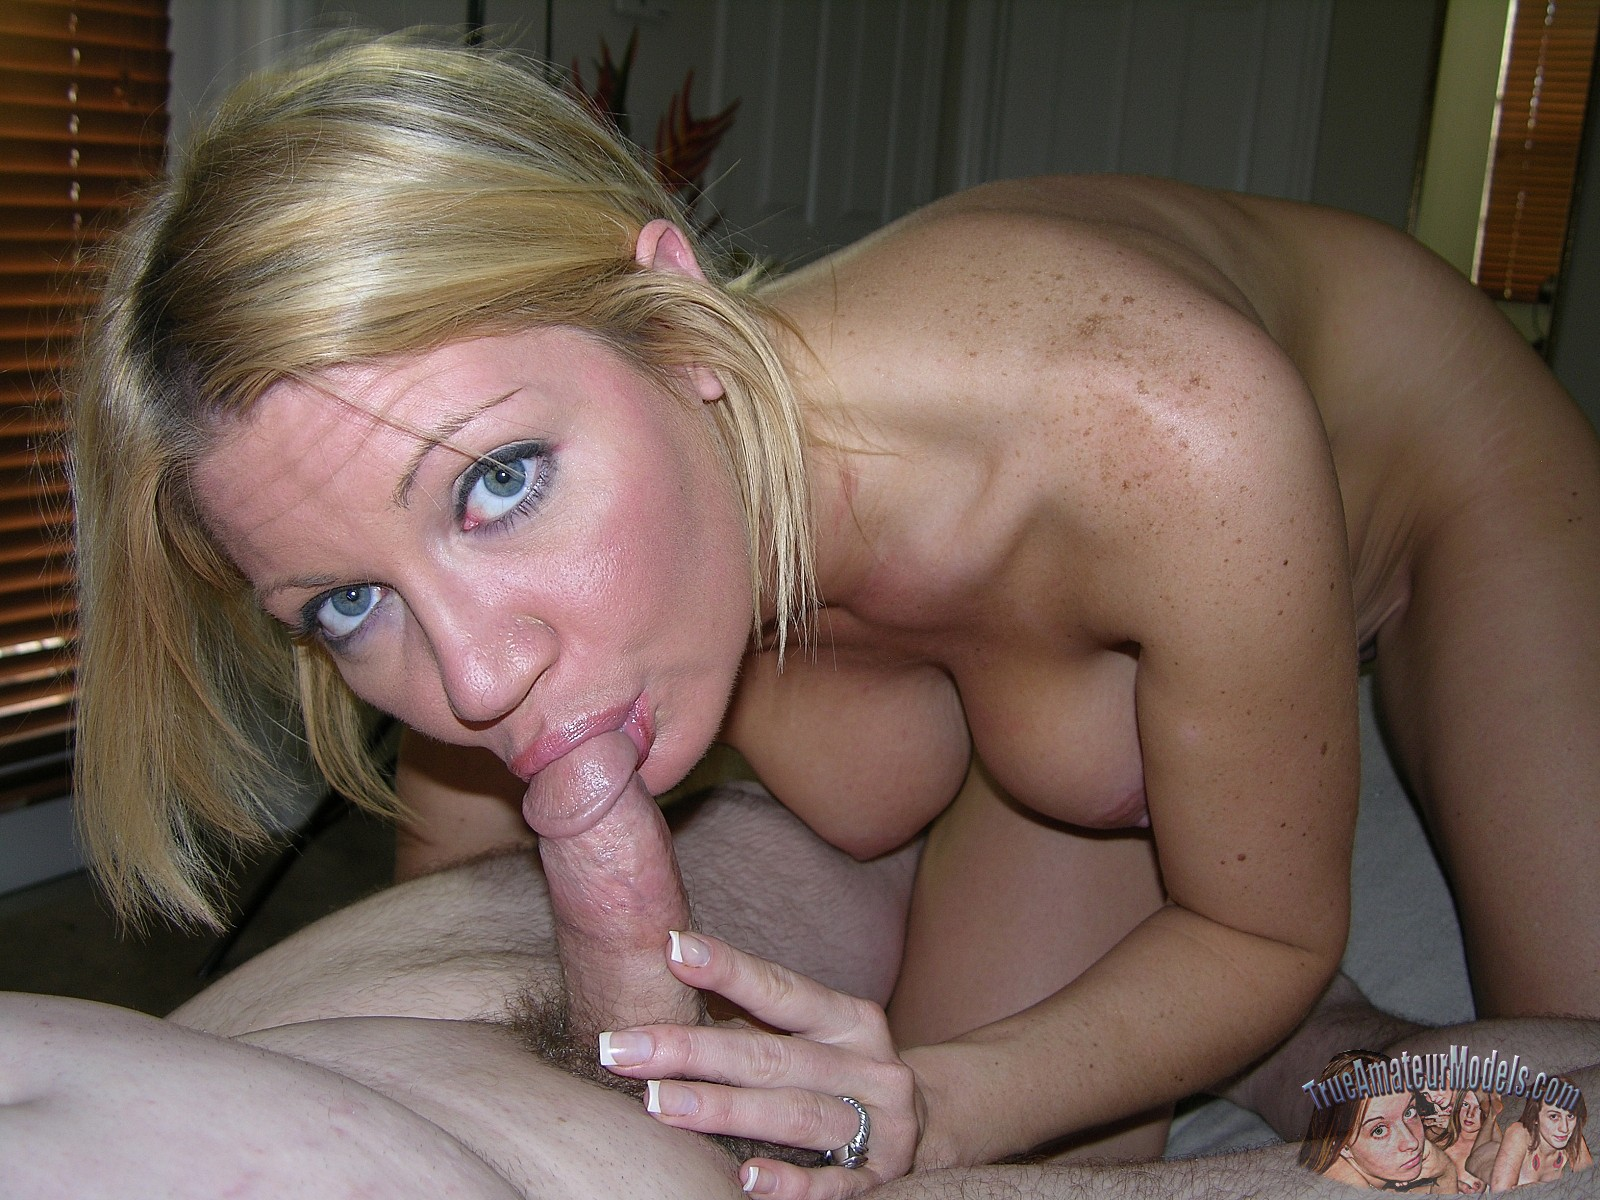 young porn star videos